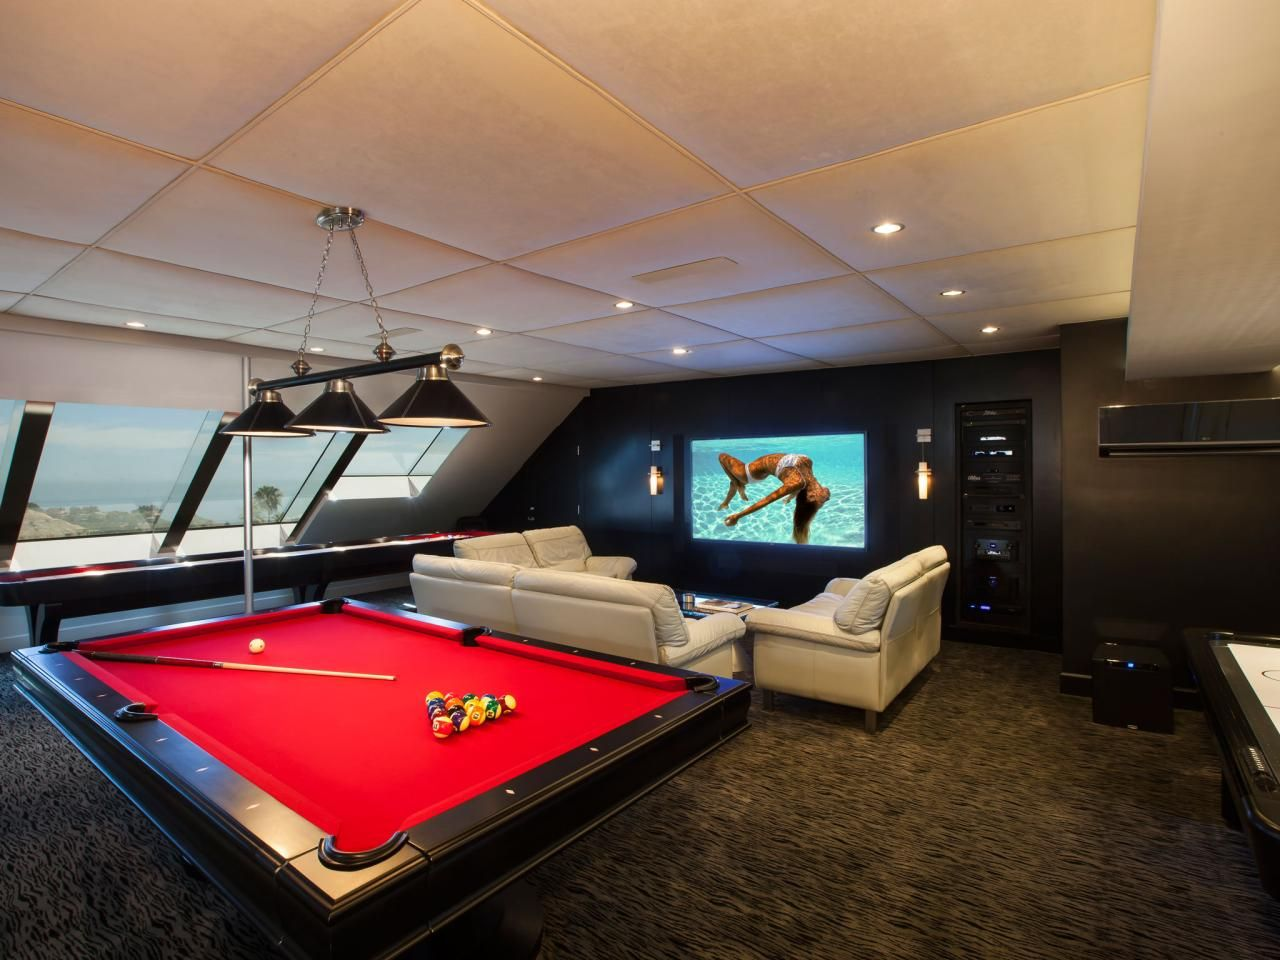 New Man Cave Ideas : Man cave ideas fresh new for caves unique